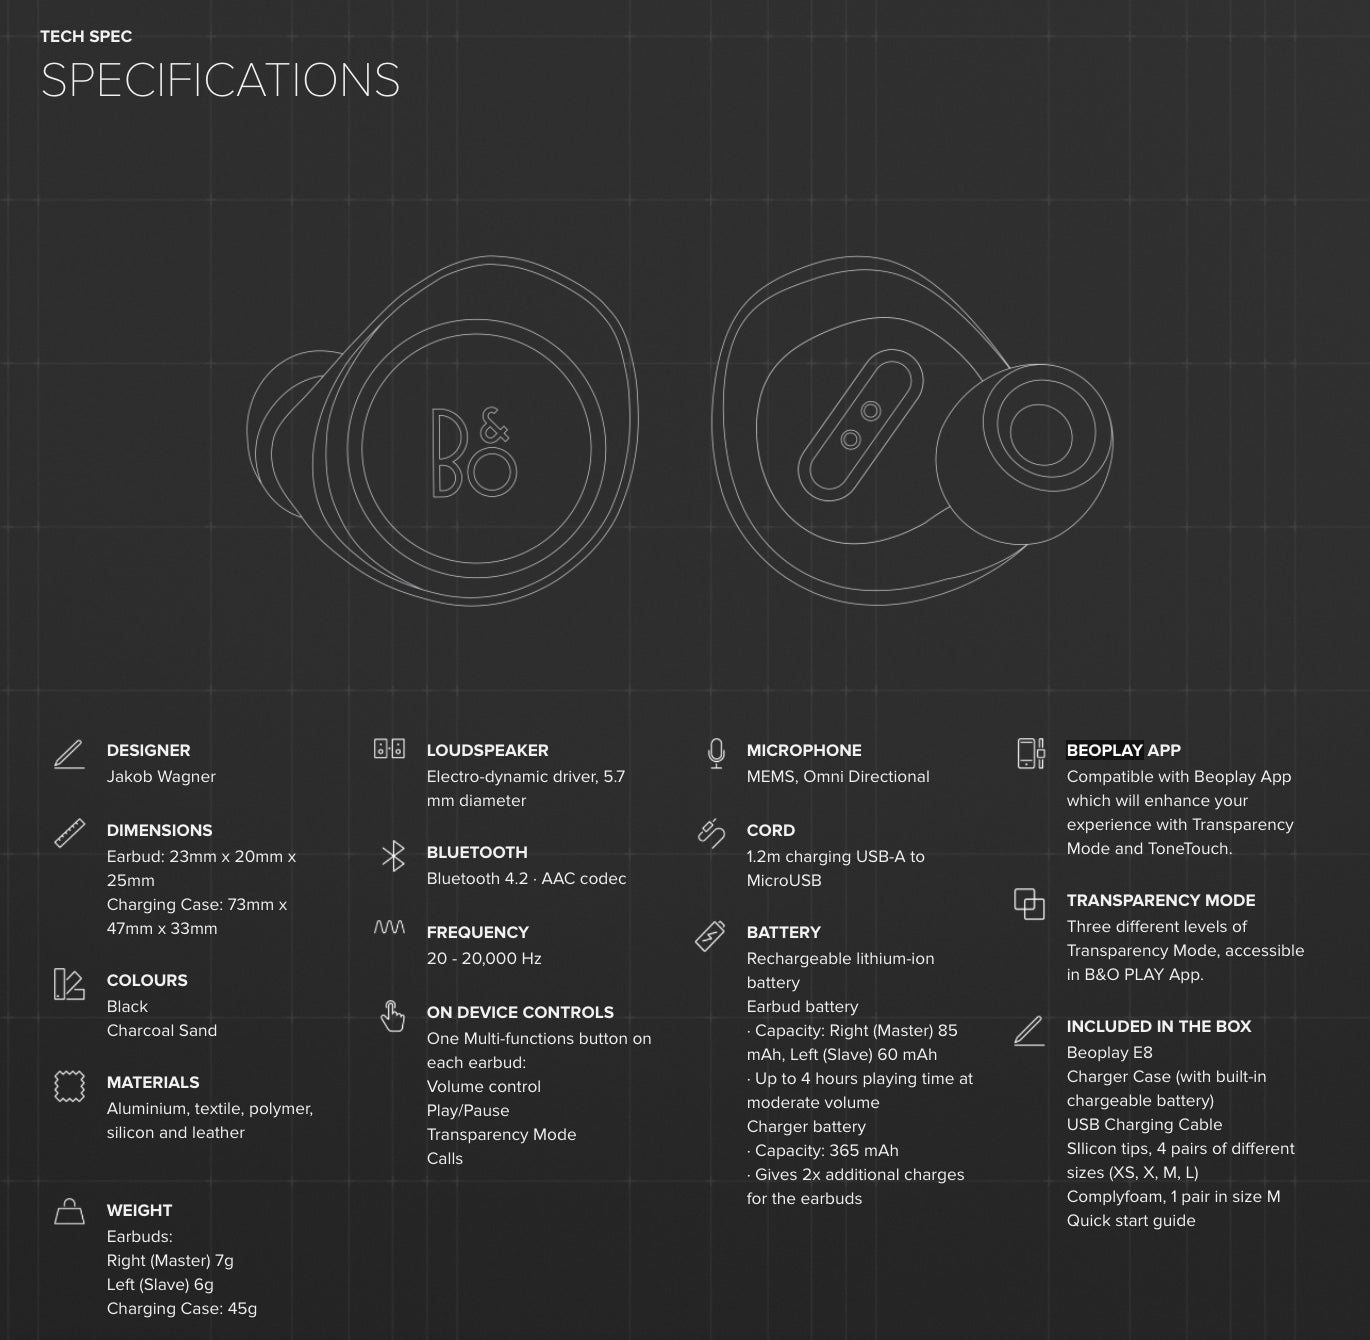 B&O PLAY E8 Wireless Earphones specifications